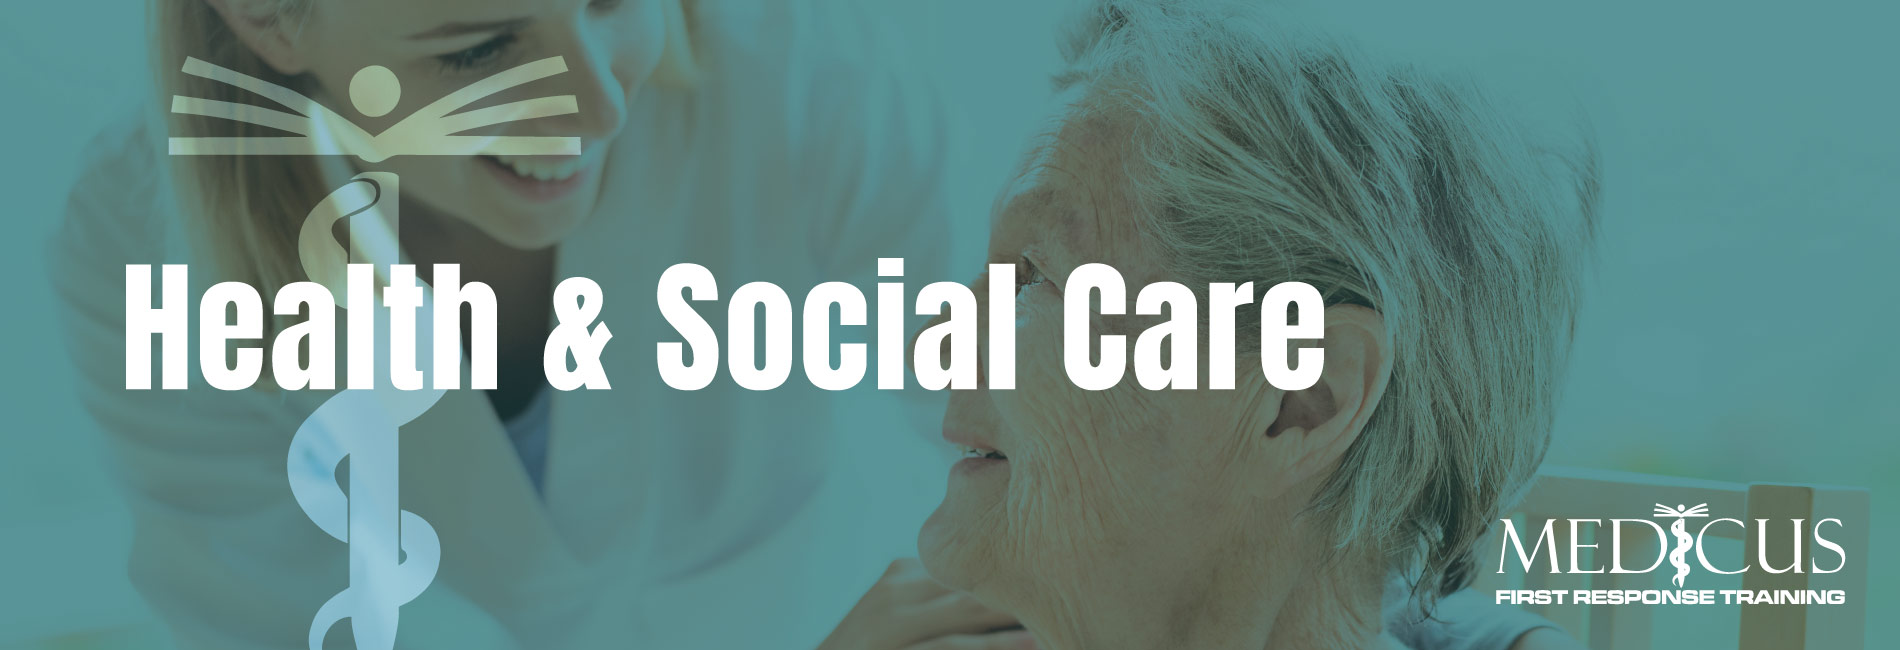 Medicus-Training-Carmarthen-Services-Health-and-Social-Care